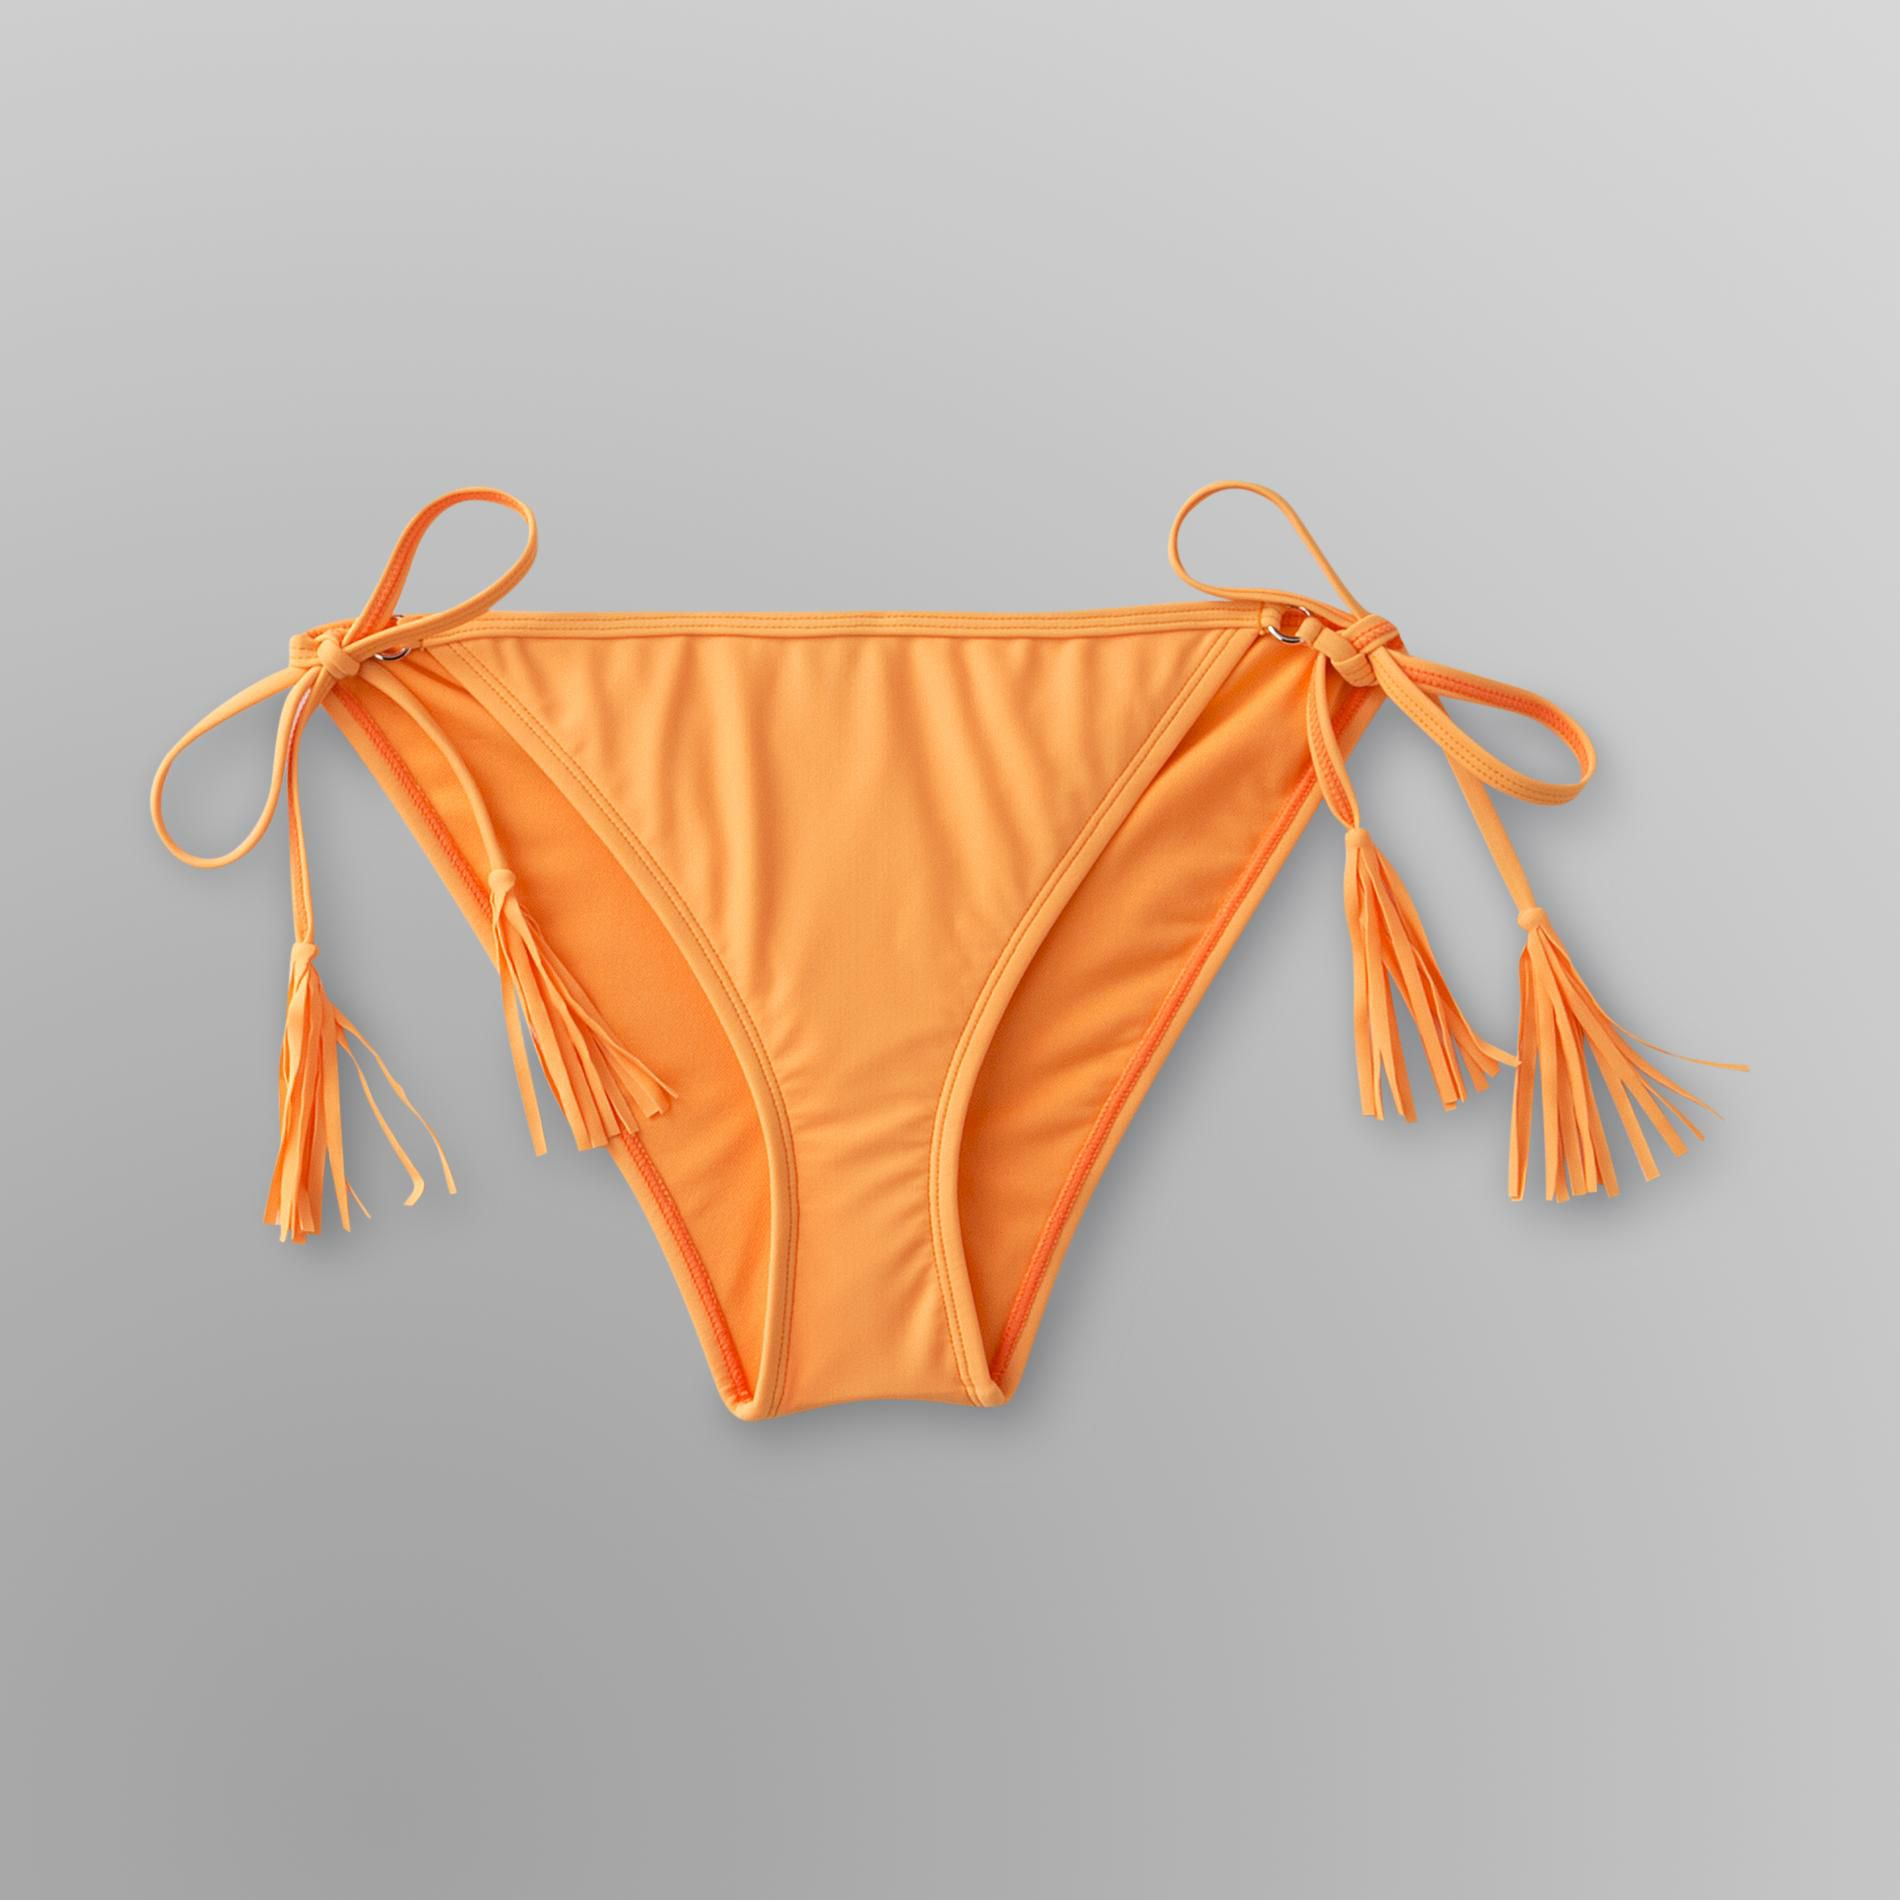 Joe Boxer Junior's String Bikini Bottom - Fringe at Sears.com